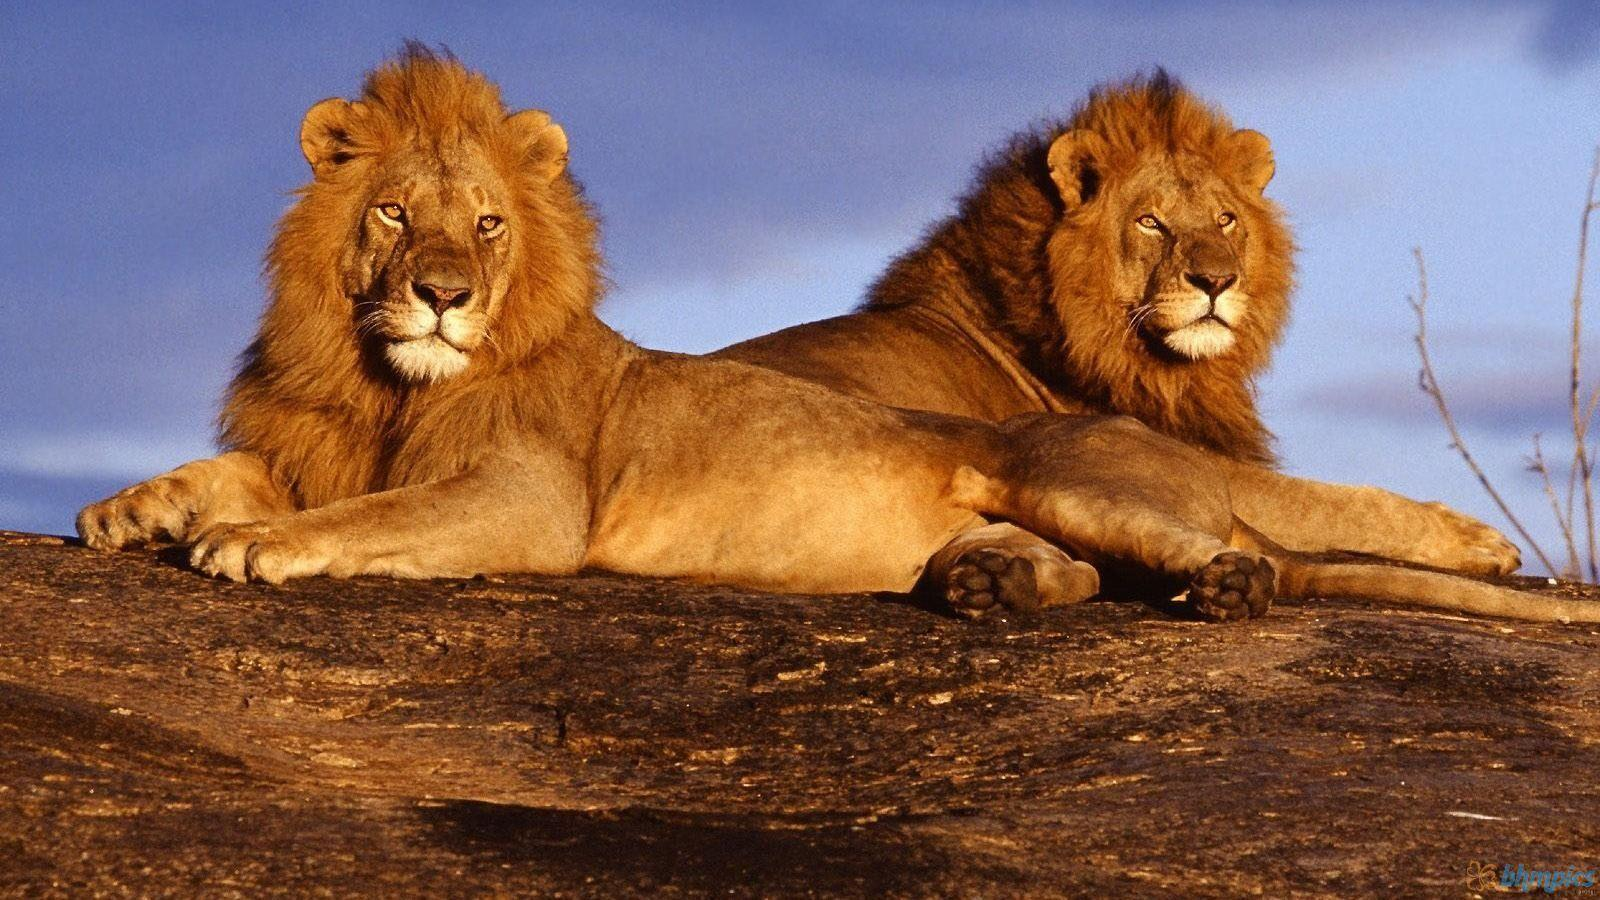 Wild Lion HD Wallpaper - Wallpapers Points